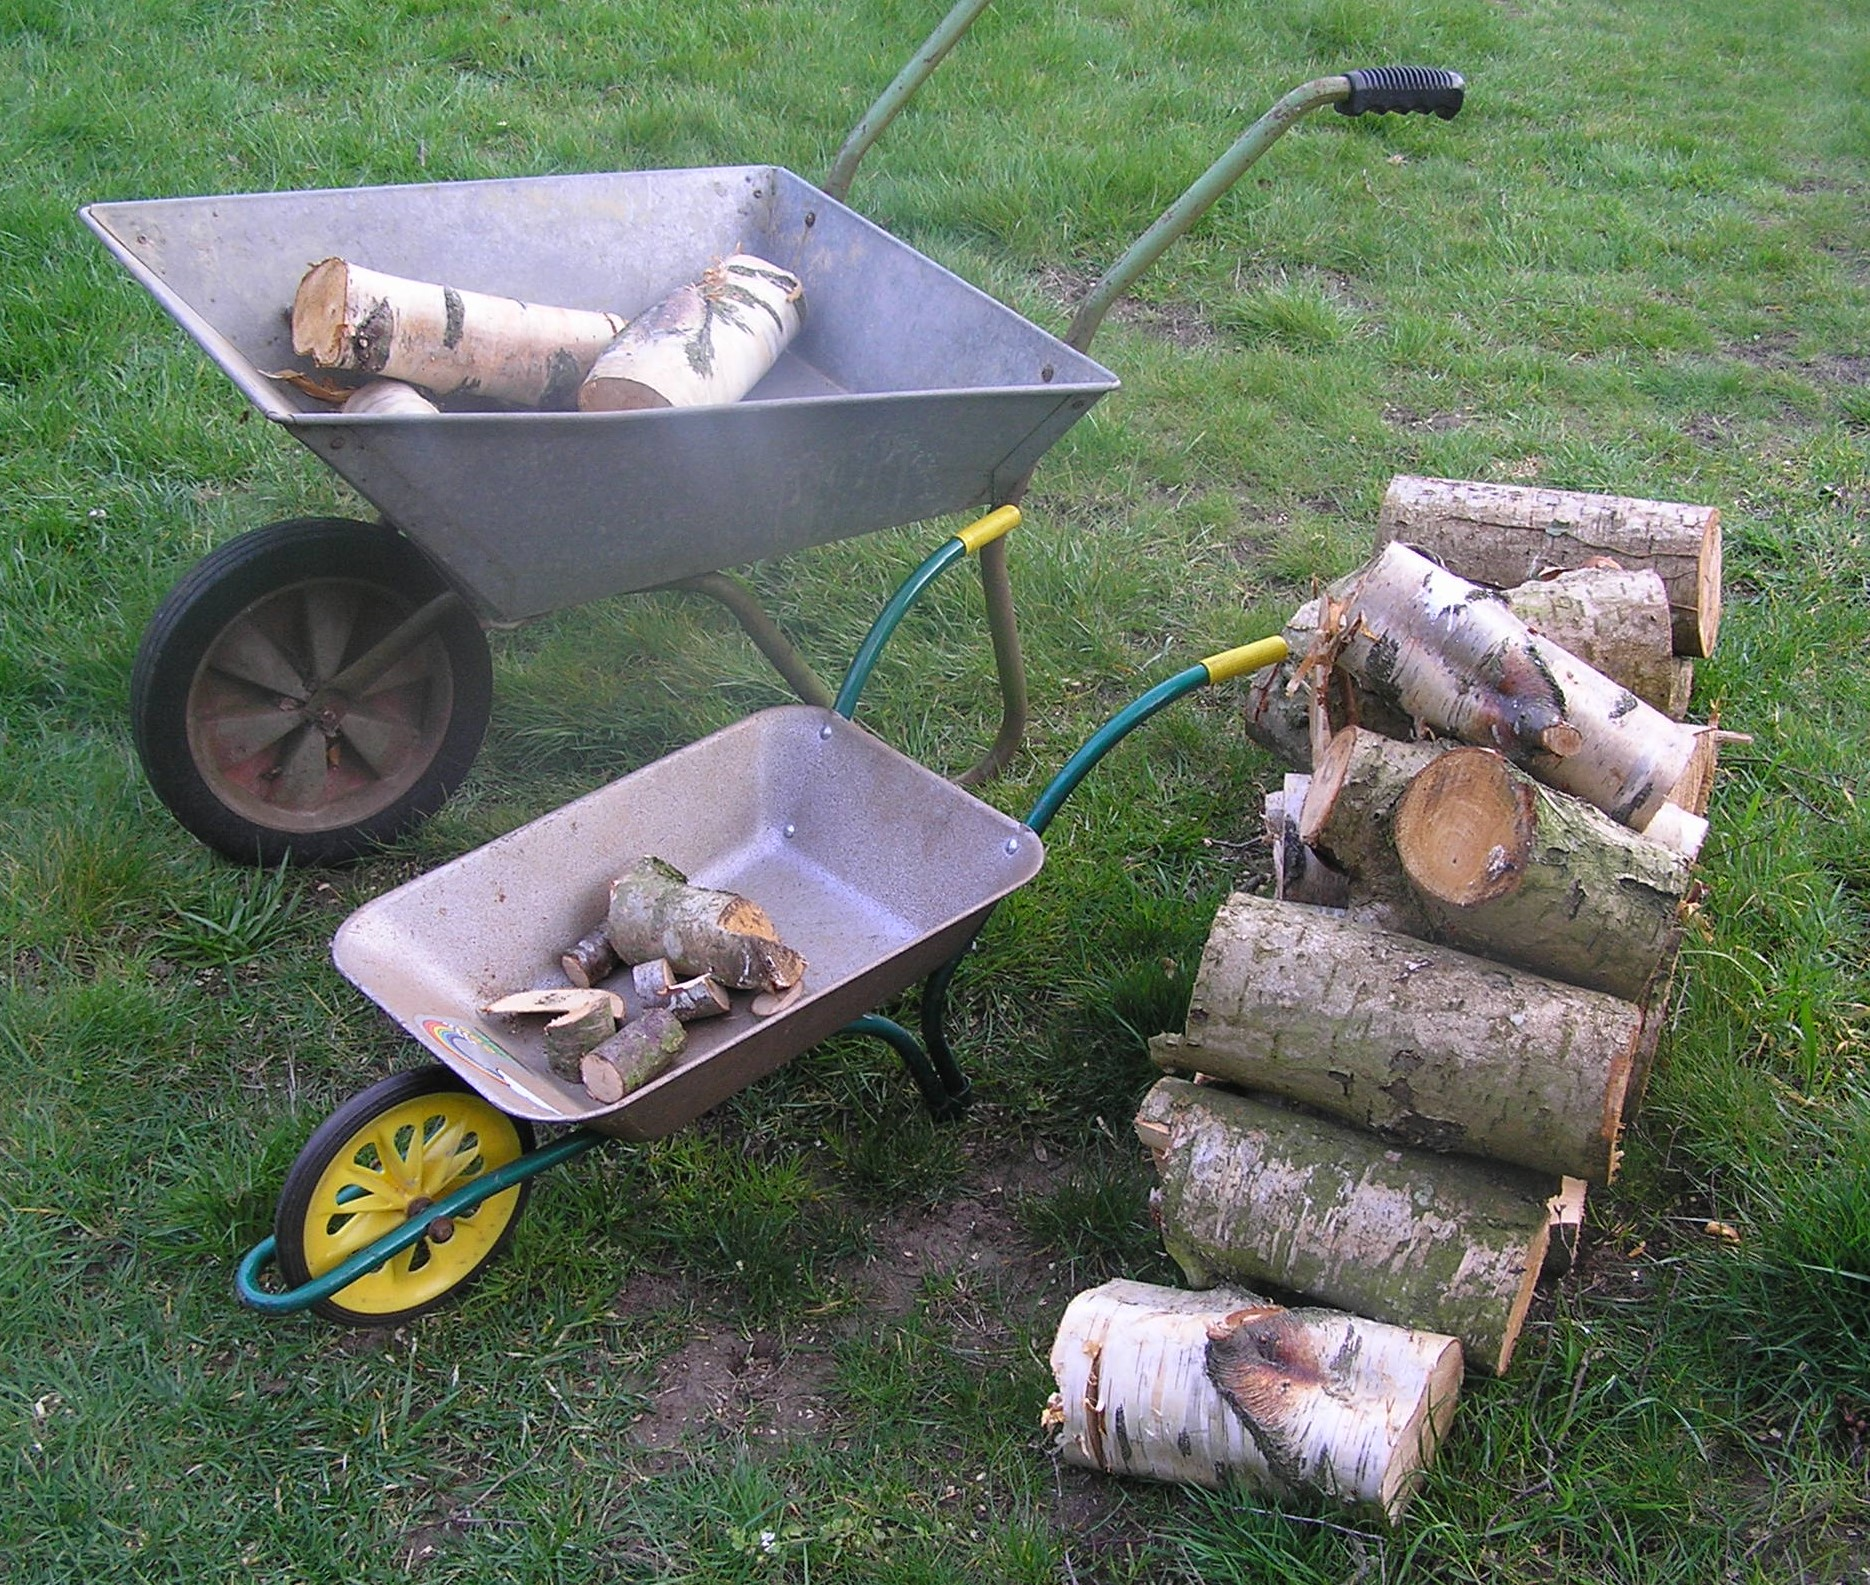 In a garden, an adult wheelbarrow is pictured next to a smaller child's wheelbarrow for comparison, both are filled with logs and there is a stack of cut logs nearby